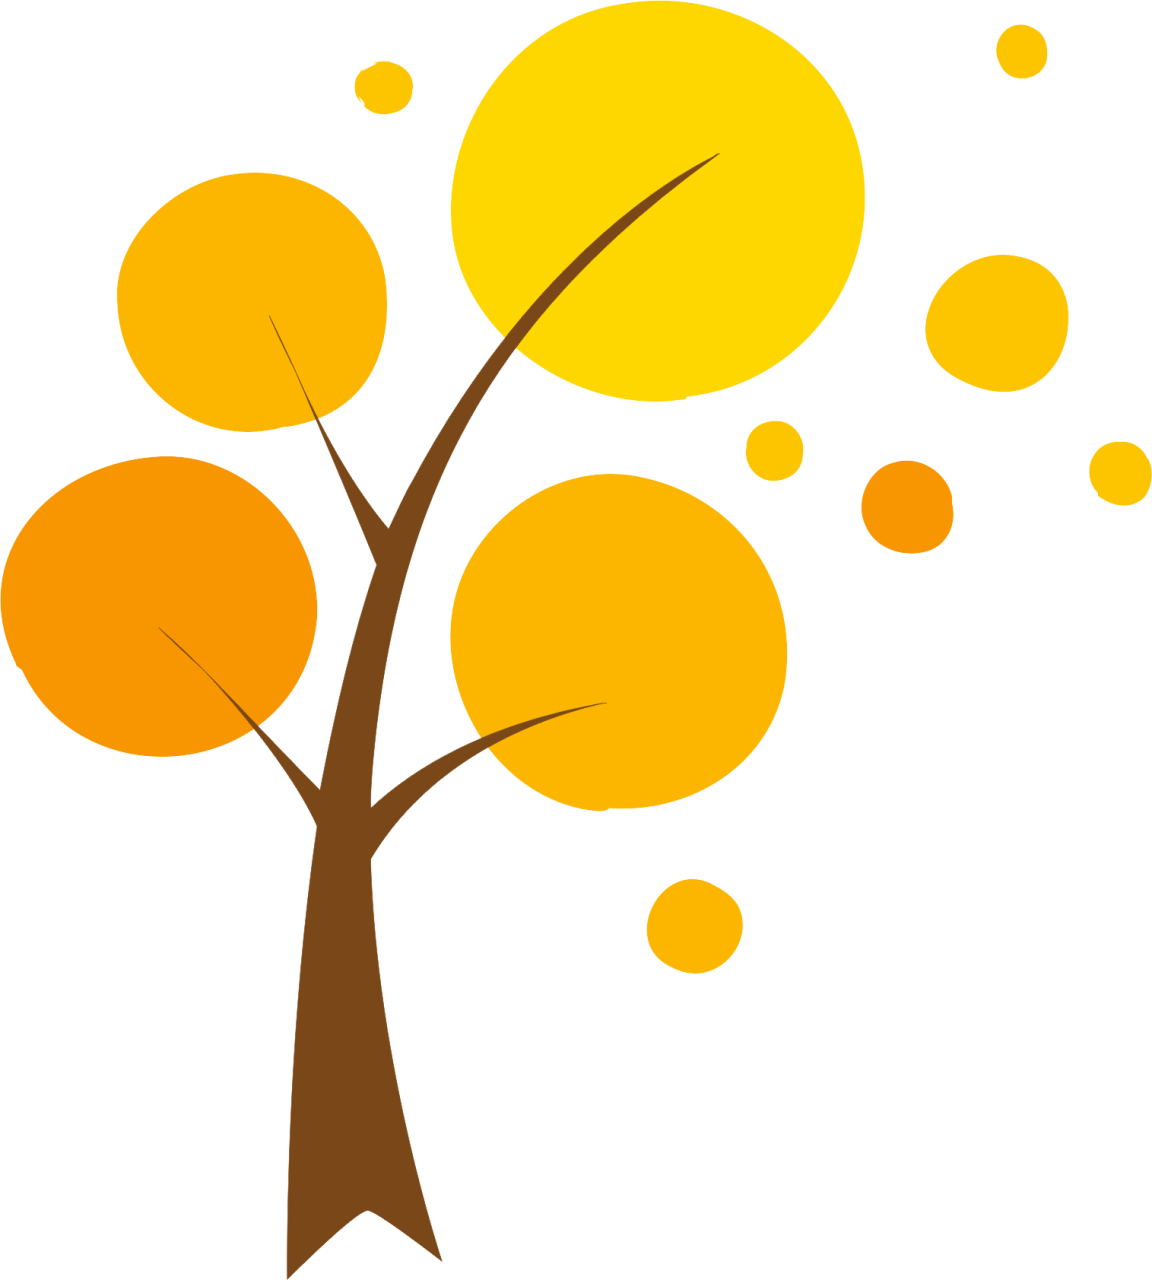 Clipart trees abstract.  collection of cute